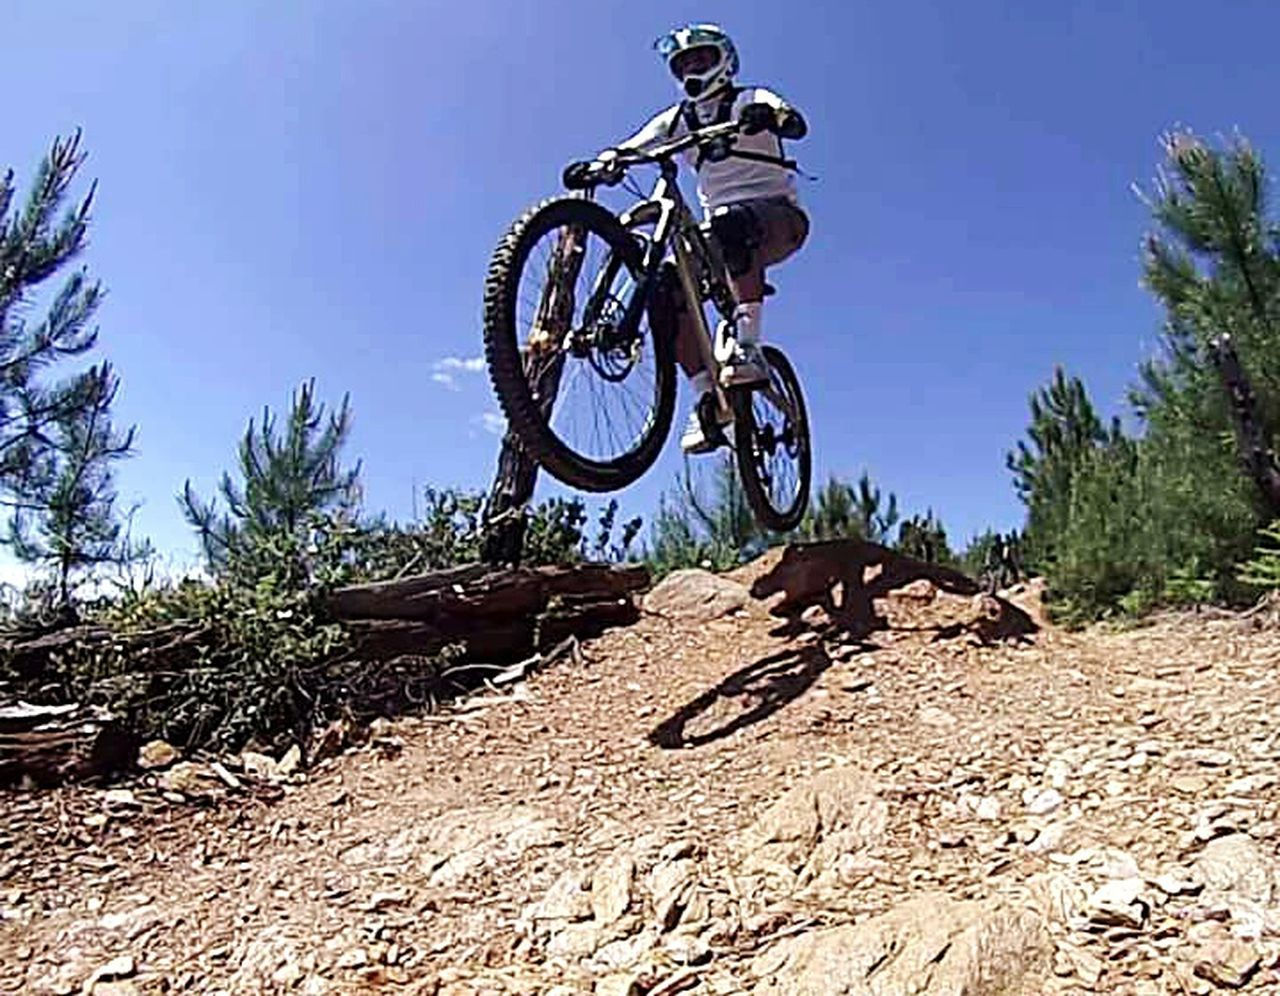 stunt, risk, extreme sports, only men, one man only, one person, skill, adventure, danger, motocross, headwear, low angle view, men, adult, adults only, people, sport, outdoors, motorcycle, mid-air, day, mountain bike, full length, sports clothing, clear sky, sky, tree, biker, young adult